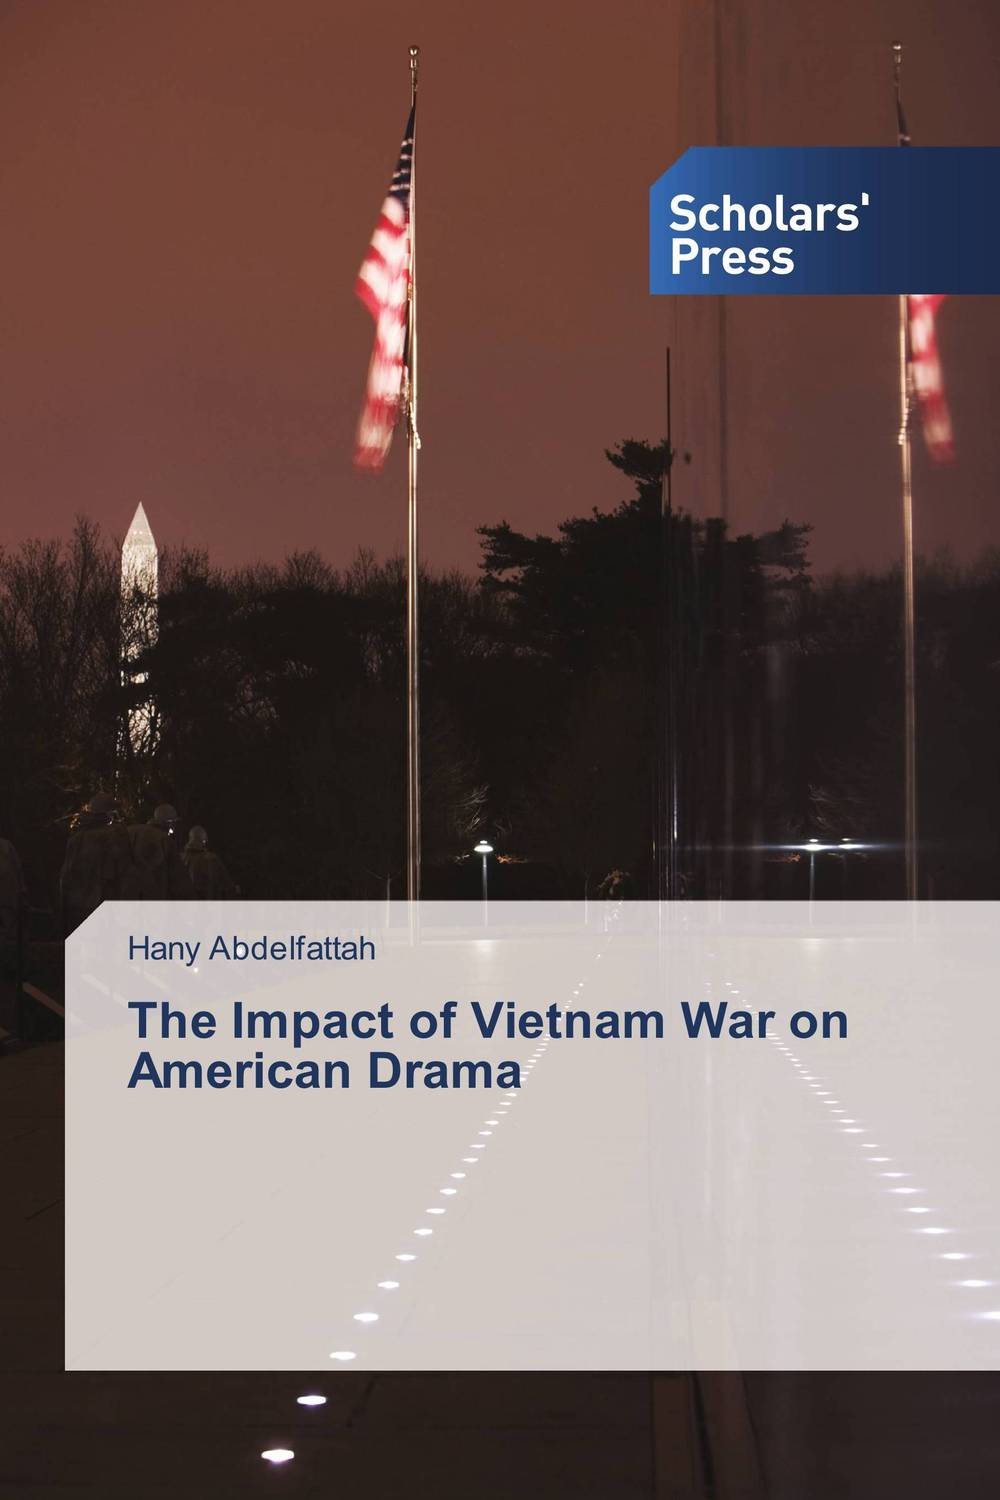 The Impact of Vietnam War on American Drama